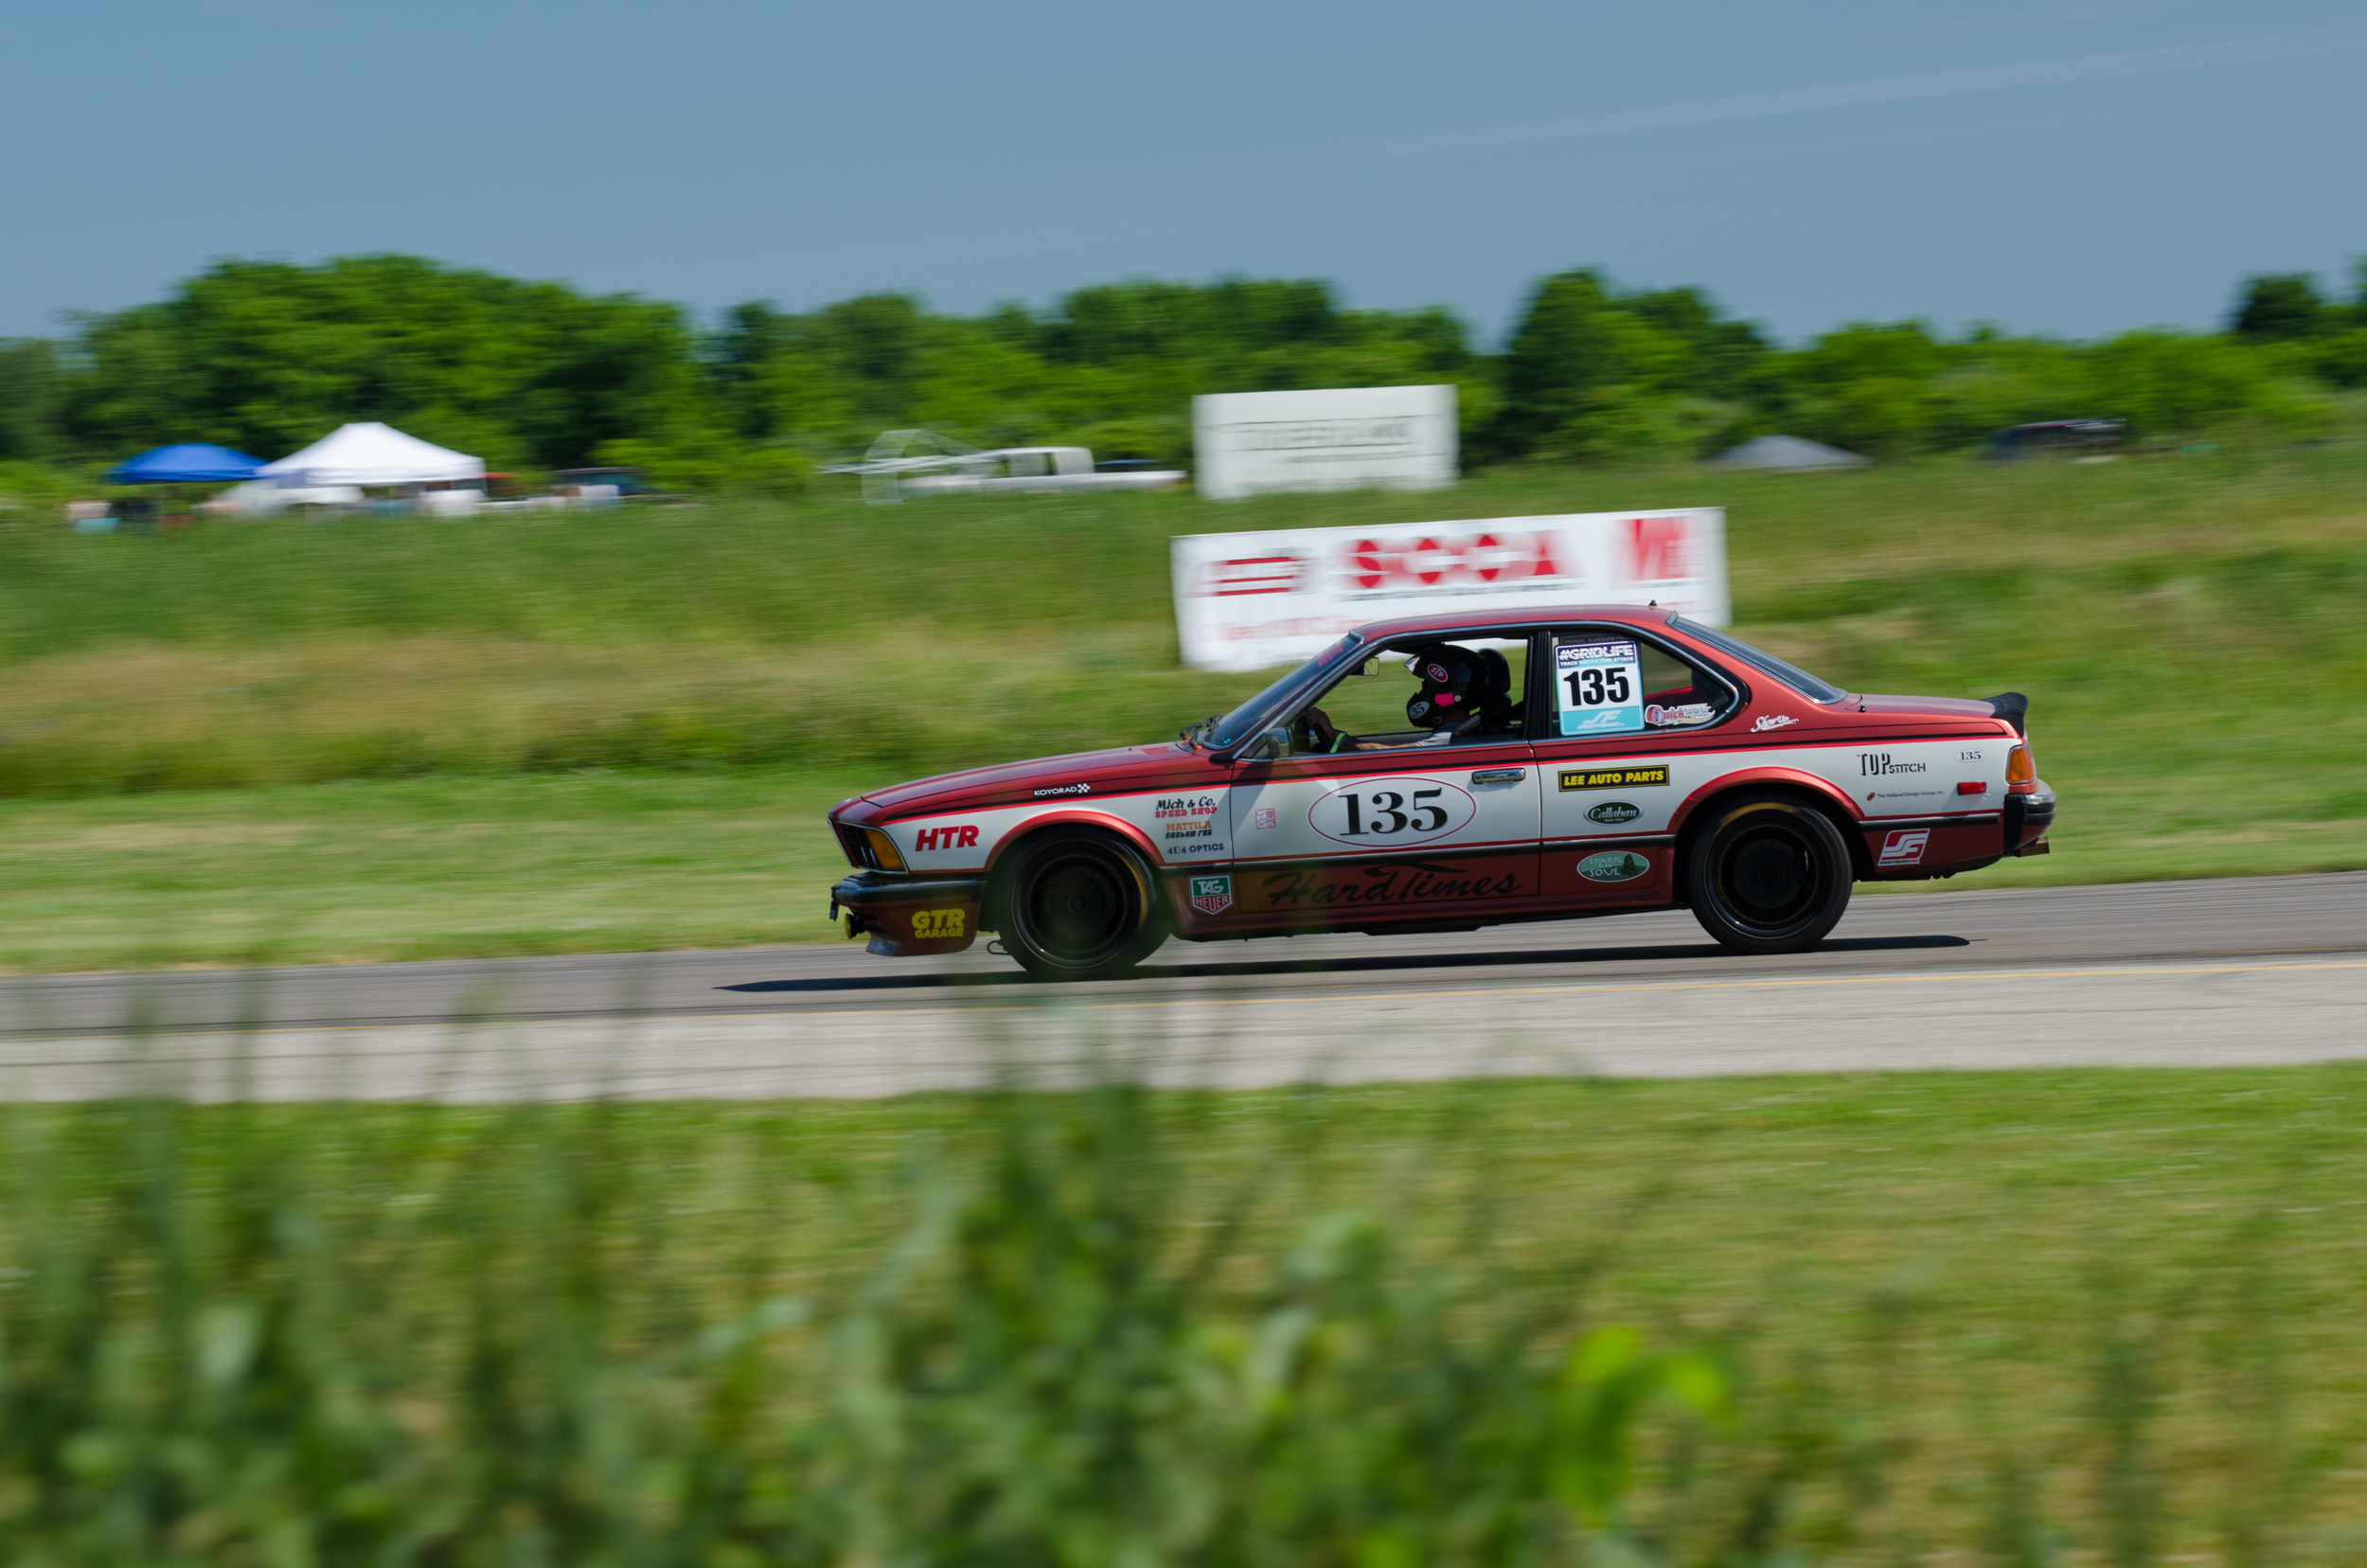 Charle's and his pretty awesome BMW. Official time 1:55.780